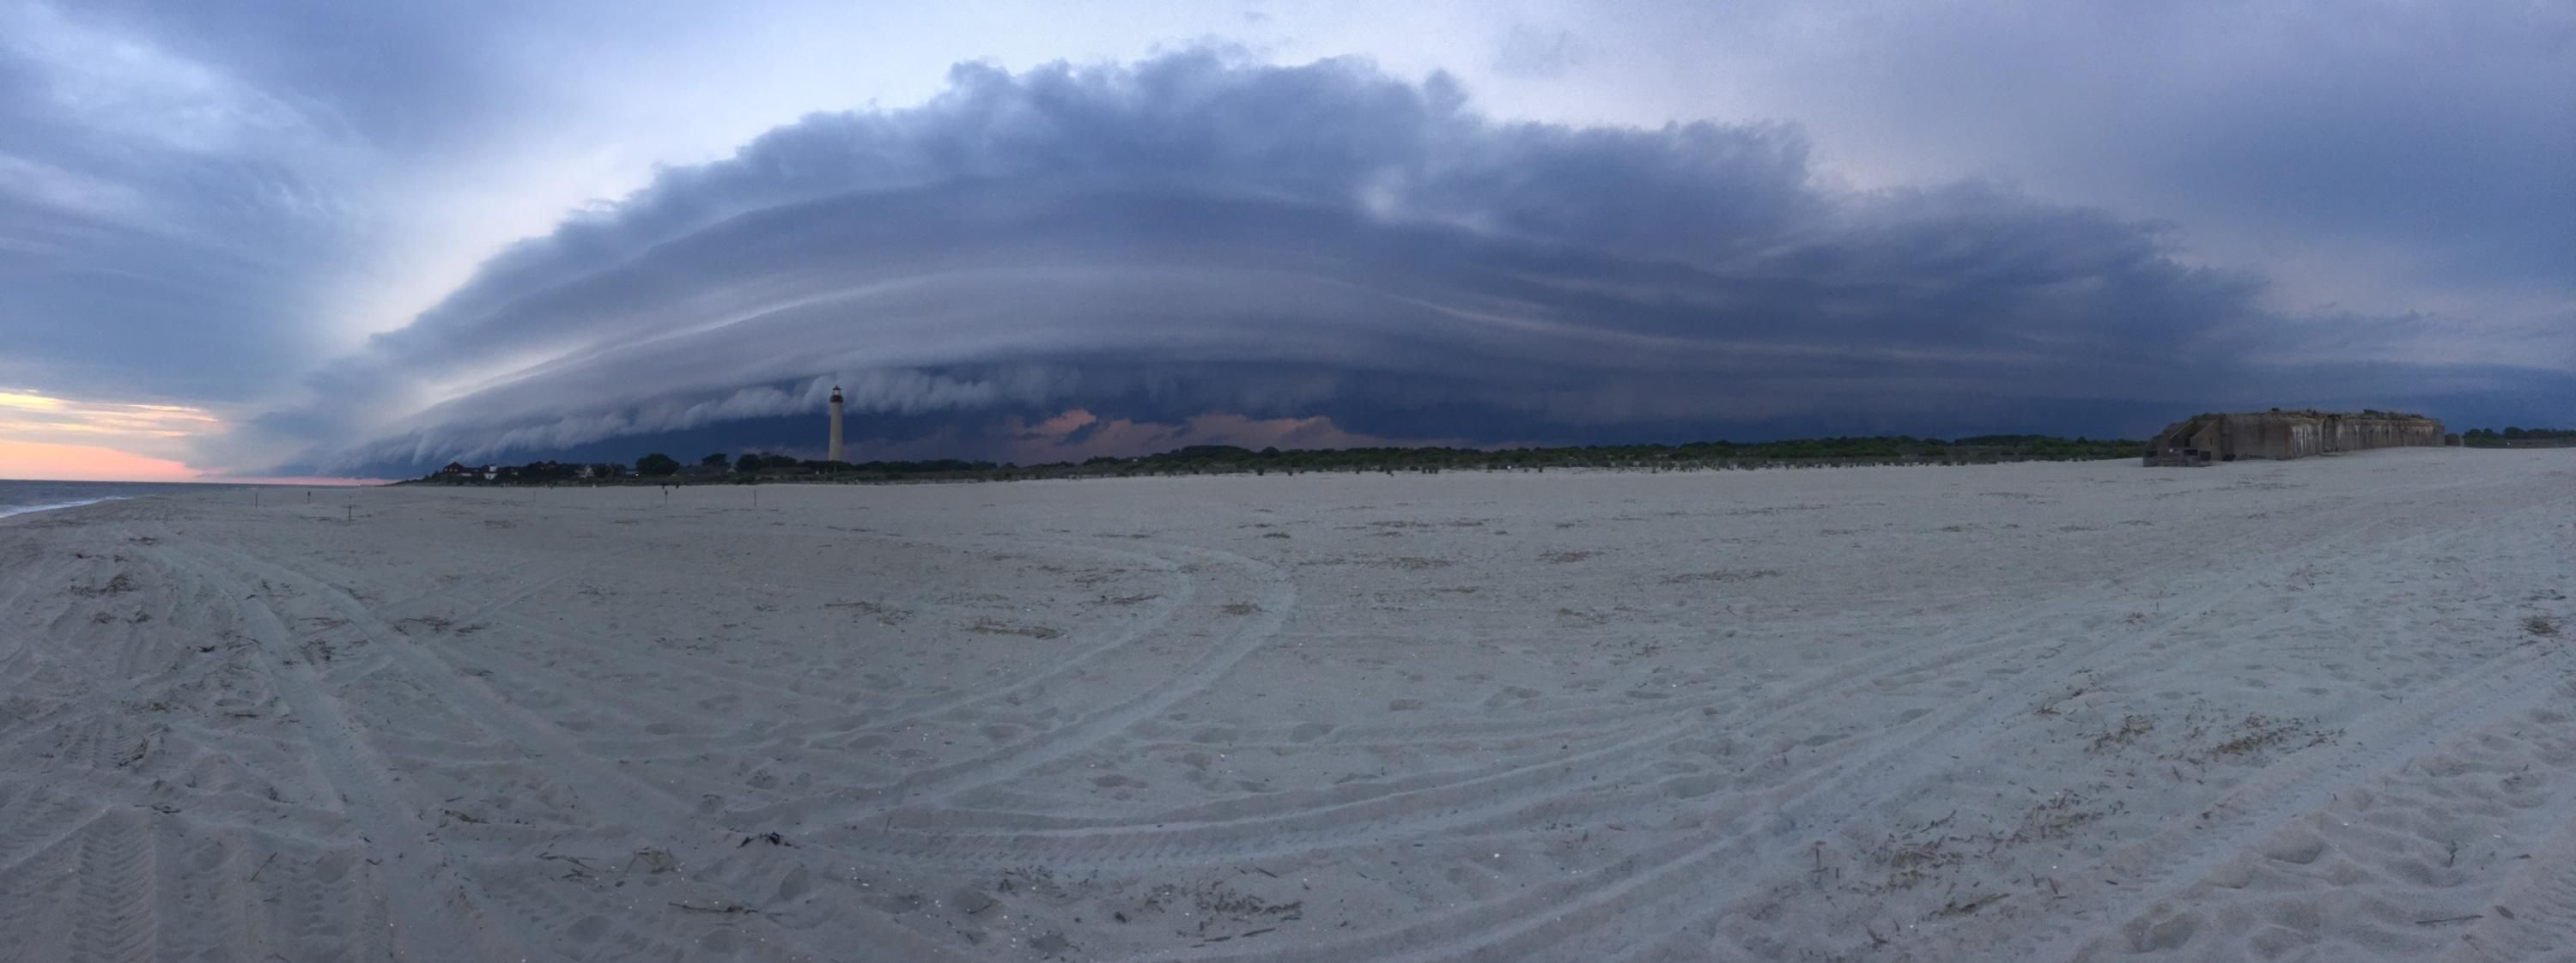 Storm Cloud over the beach in Cape May NJ [OC] [3000 x 1122]